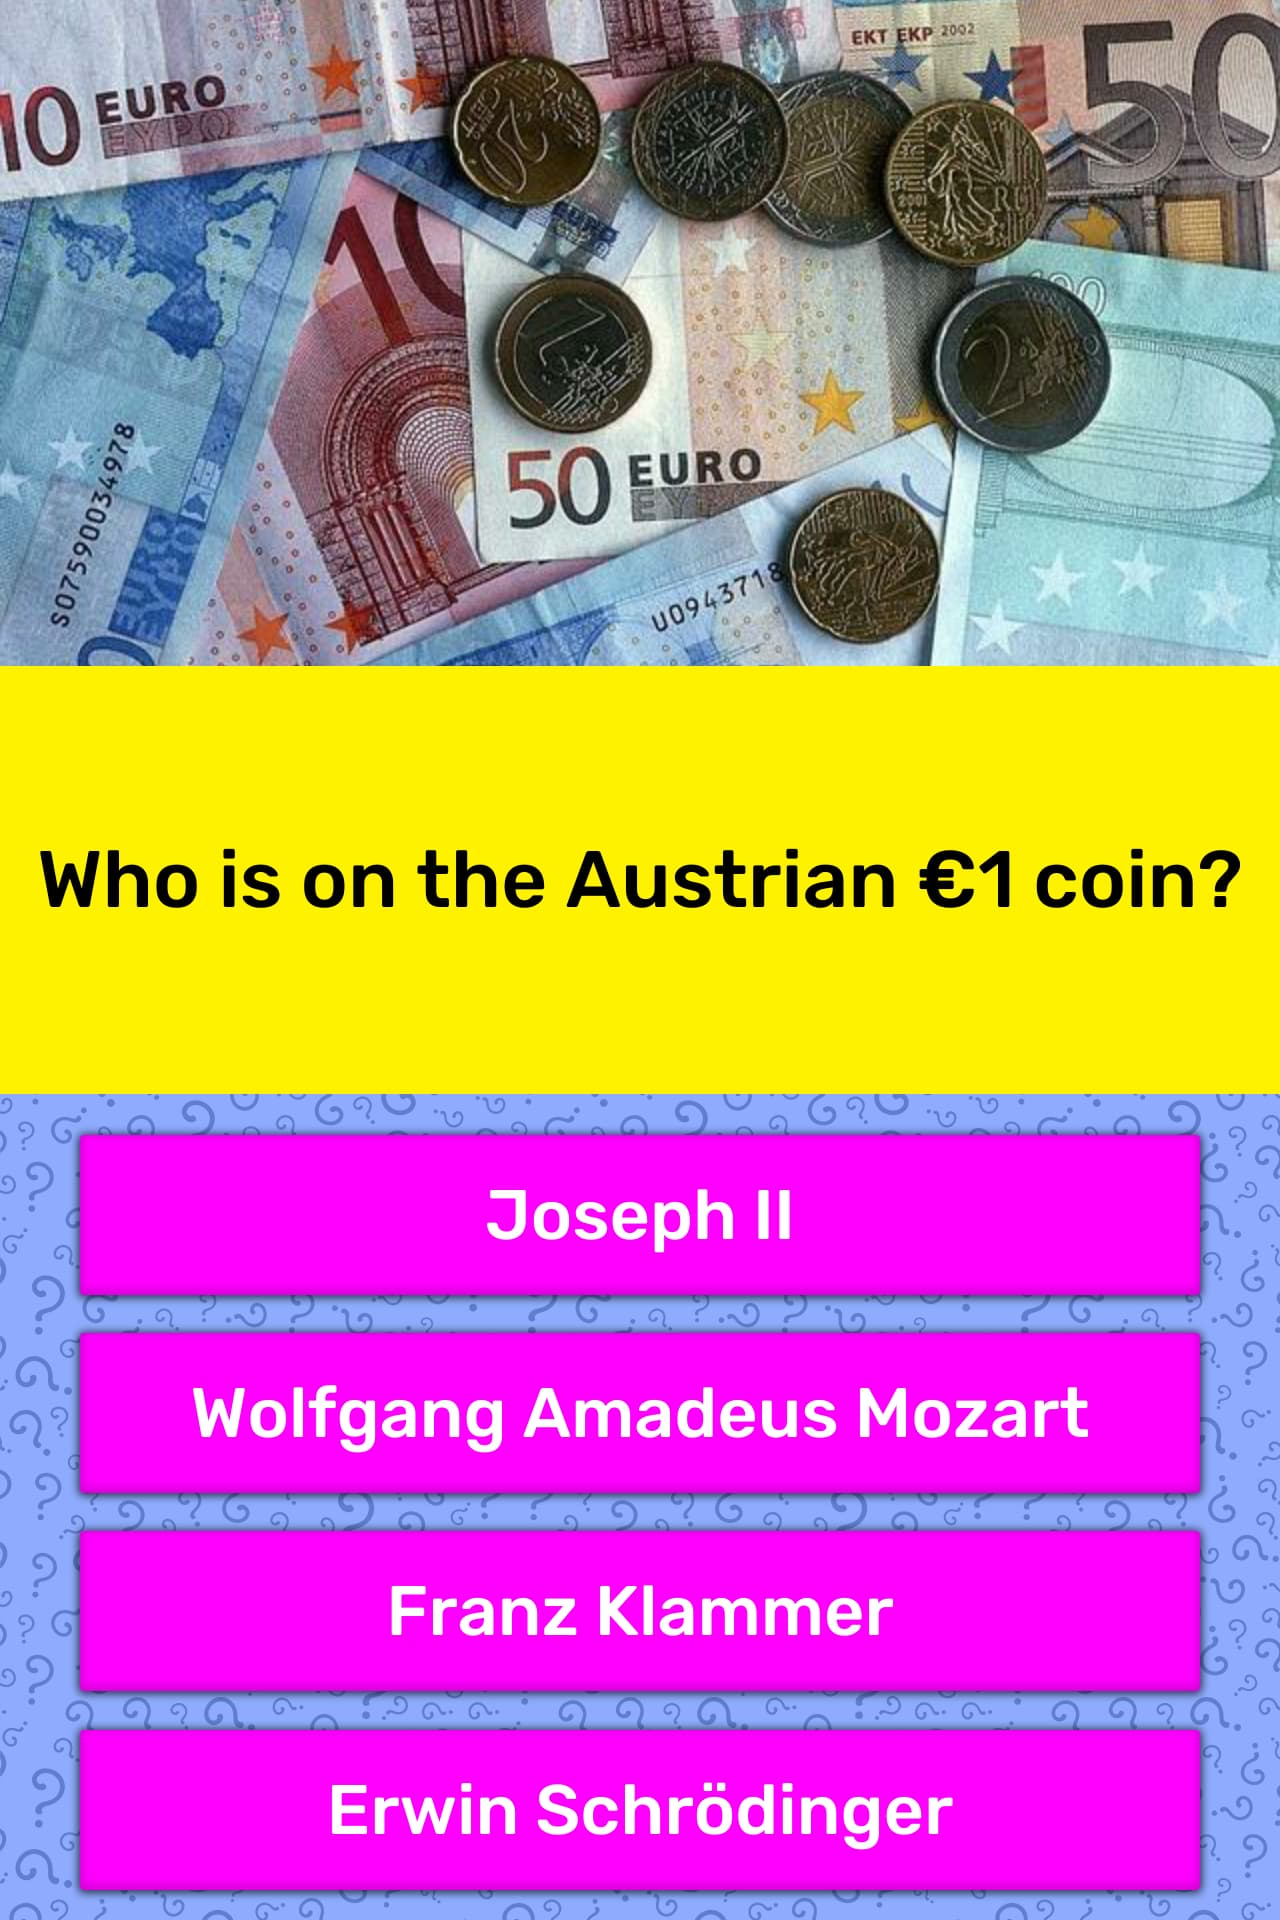 Who is on the Austrian €1 coin? | Trivia Answers | QuizzClub